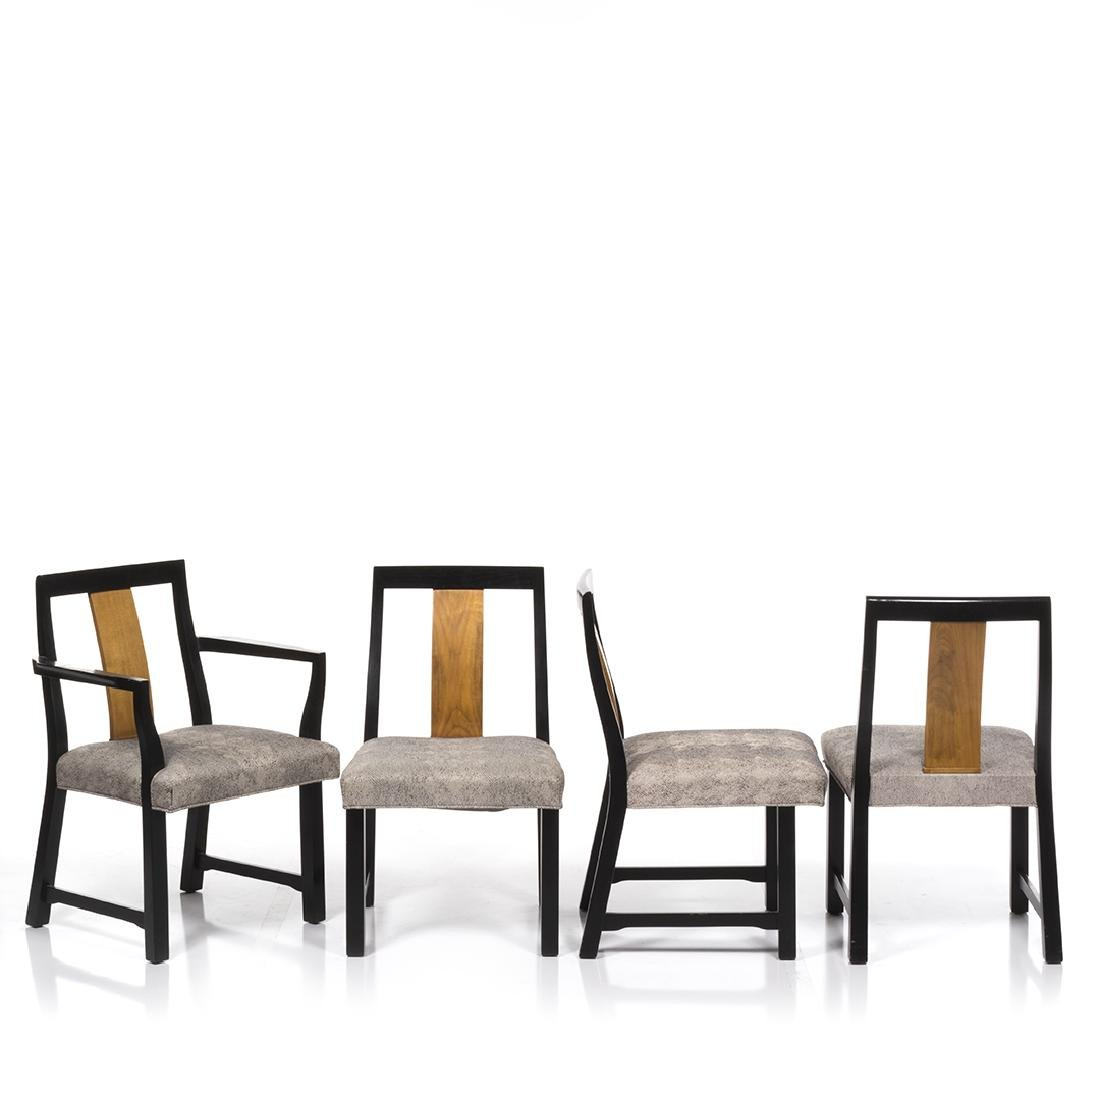 Edward Wormley Dining Chairs (8) - 2